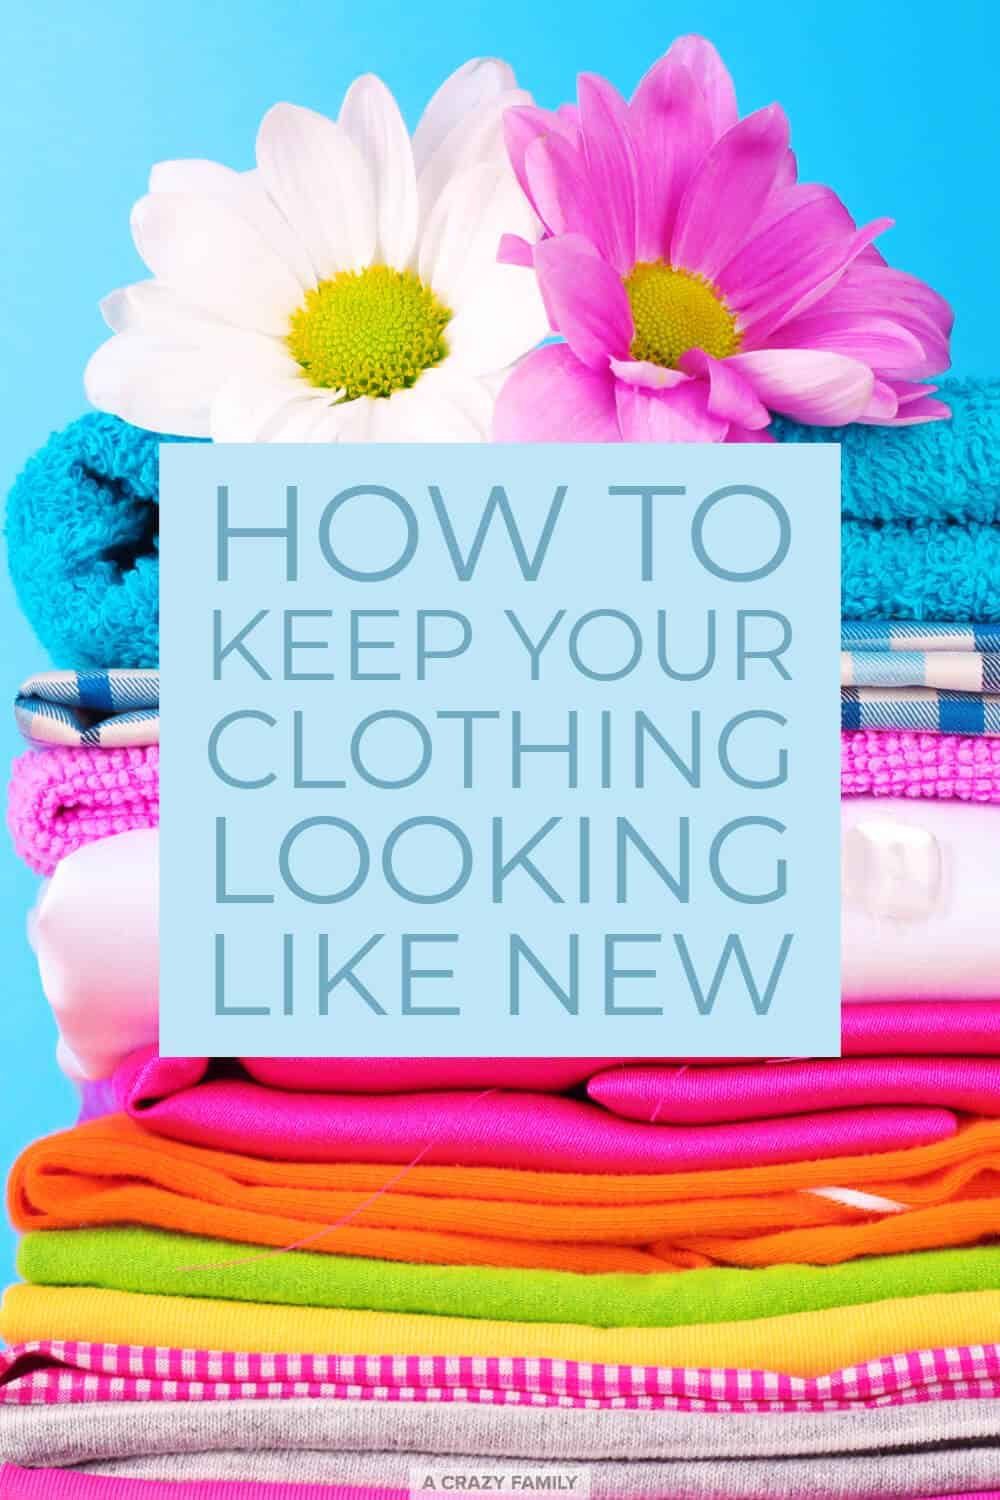 How to Keep Your Clothing Looking Like New